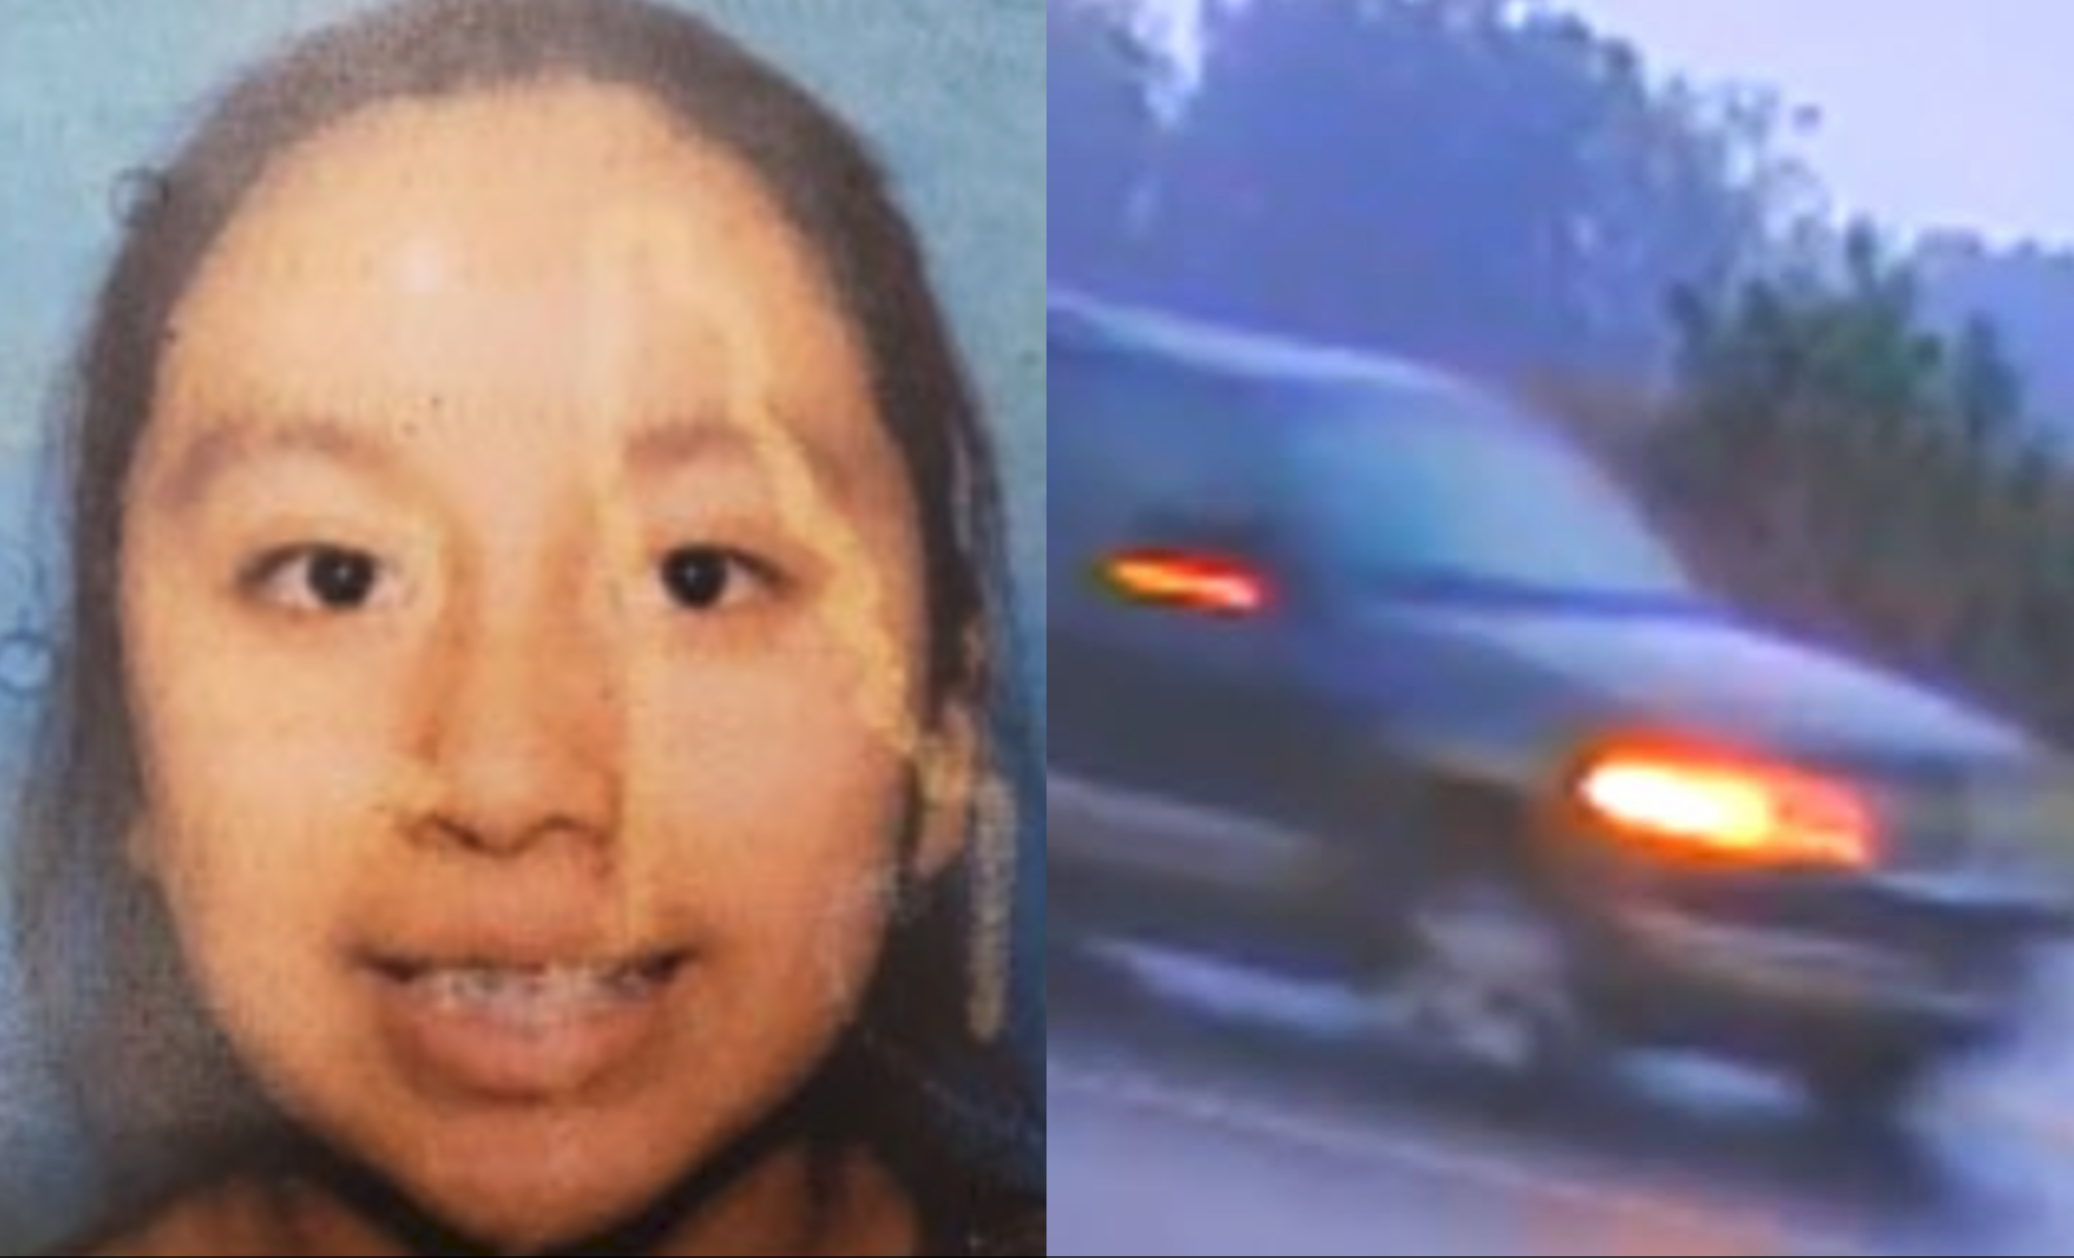 SUV Used In Eighth Grade Girl's Kidnapping Found In Wooded Area, But She's Still Missing